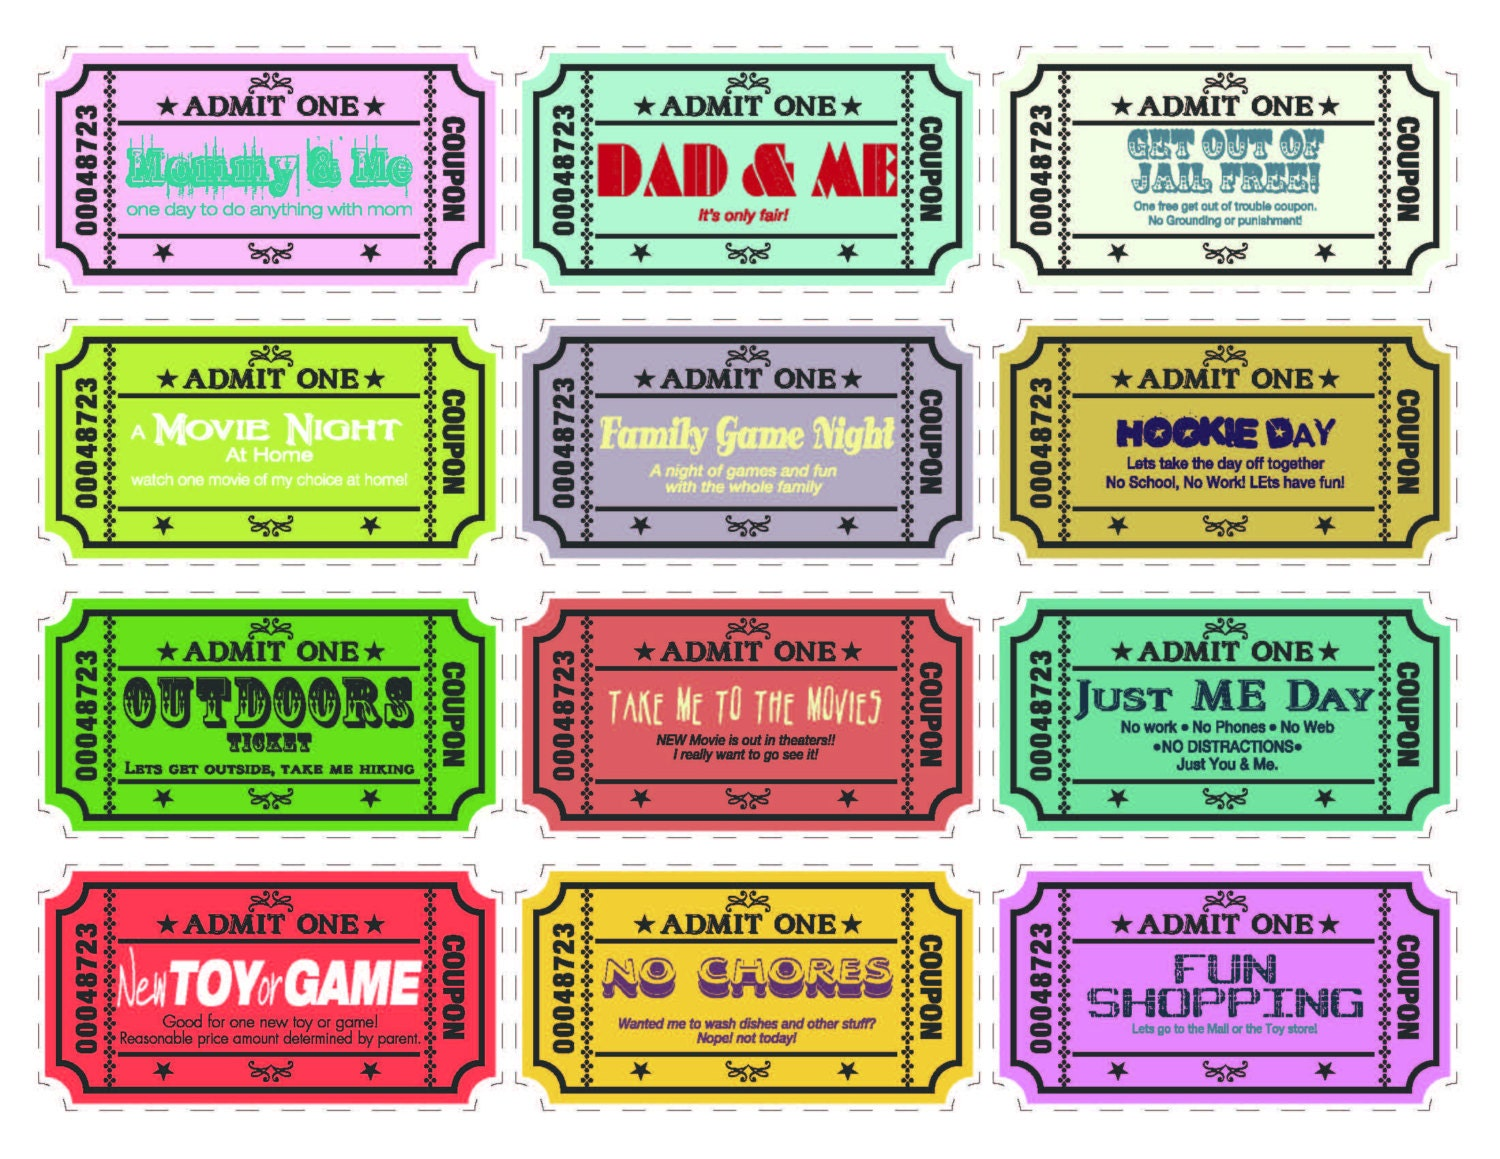 printable coupons printable kids coupons extra blank coupons 24 pre designed coupons and 12 blanks